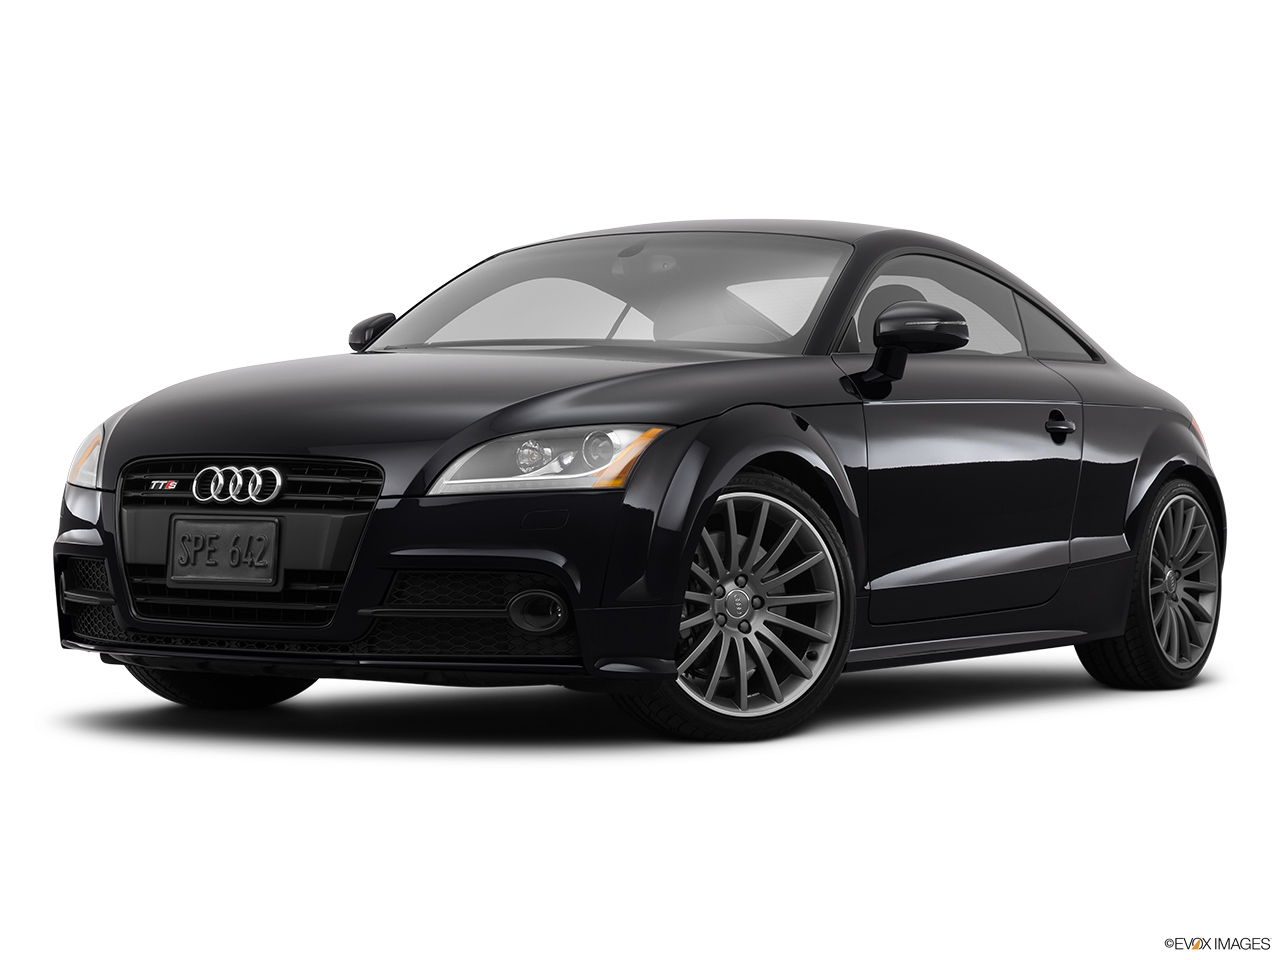 2015 Audi Tts Coupe S Tronic Quattro 2 0t Front Angle